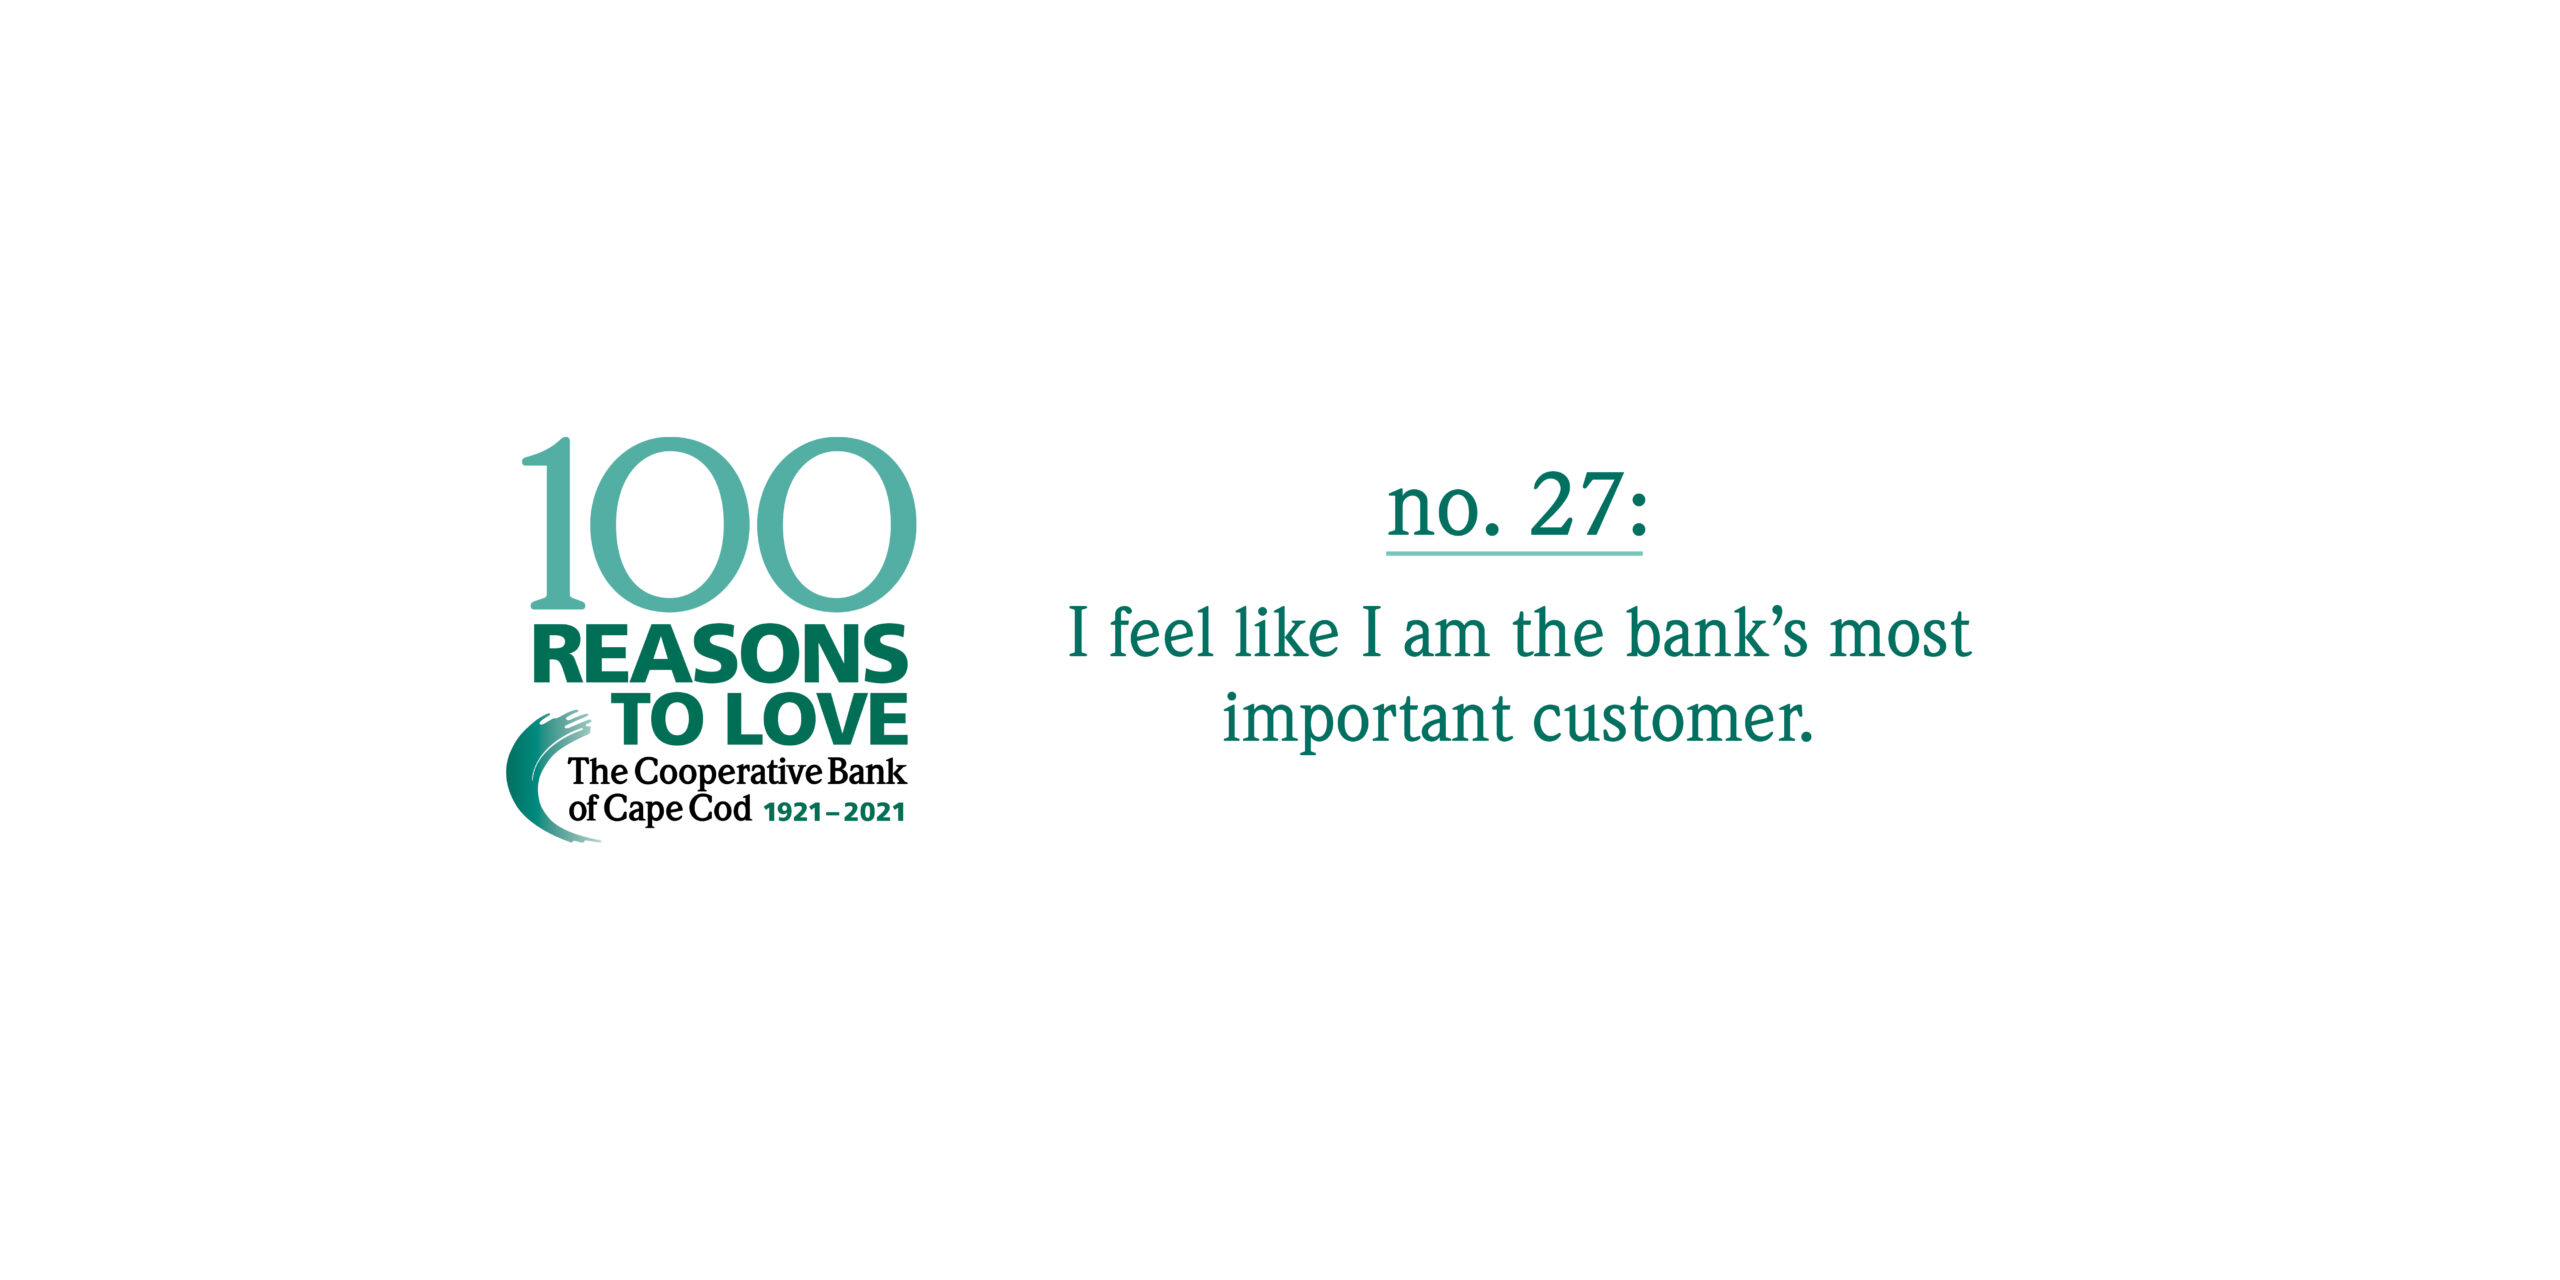 100 Reasons to Love The Coop - Reason #27: I feel like I am the bank's most important customer.